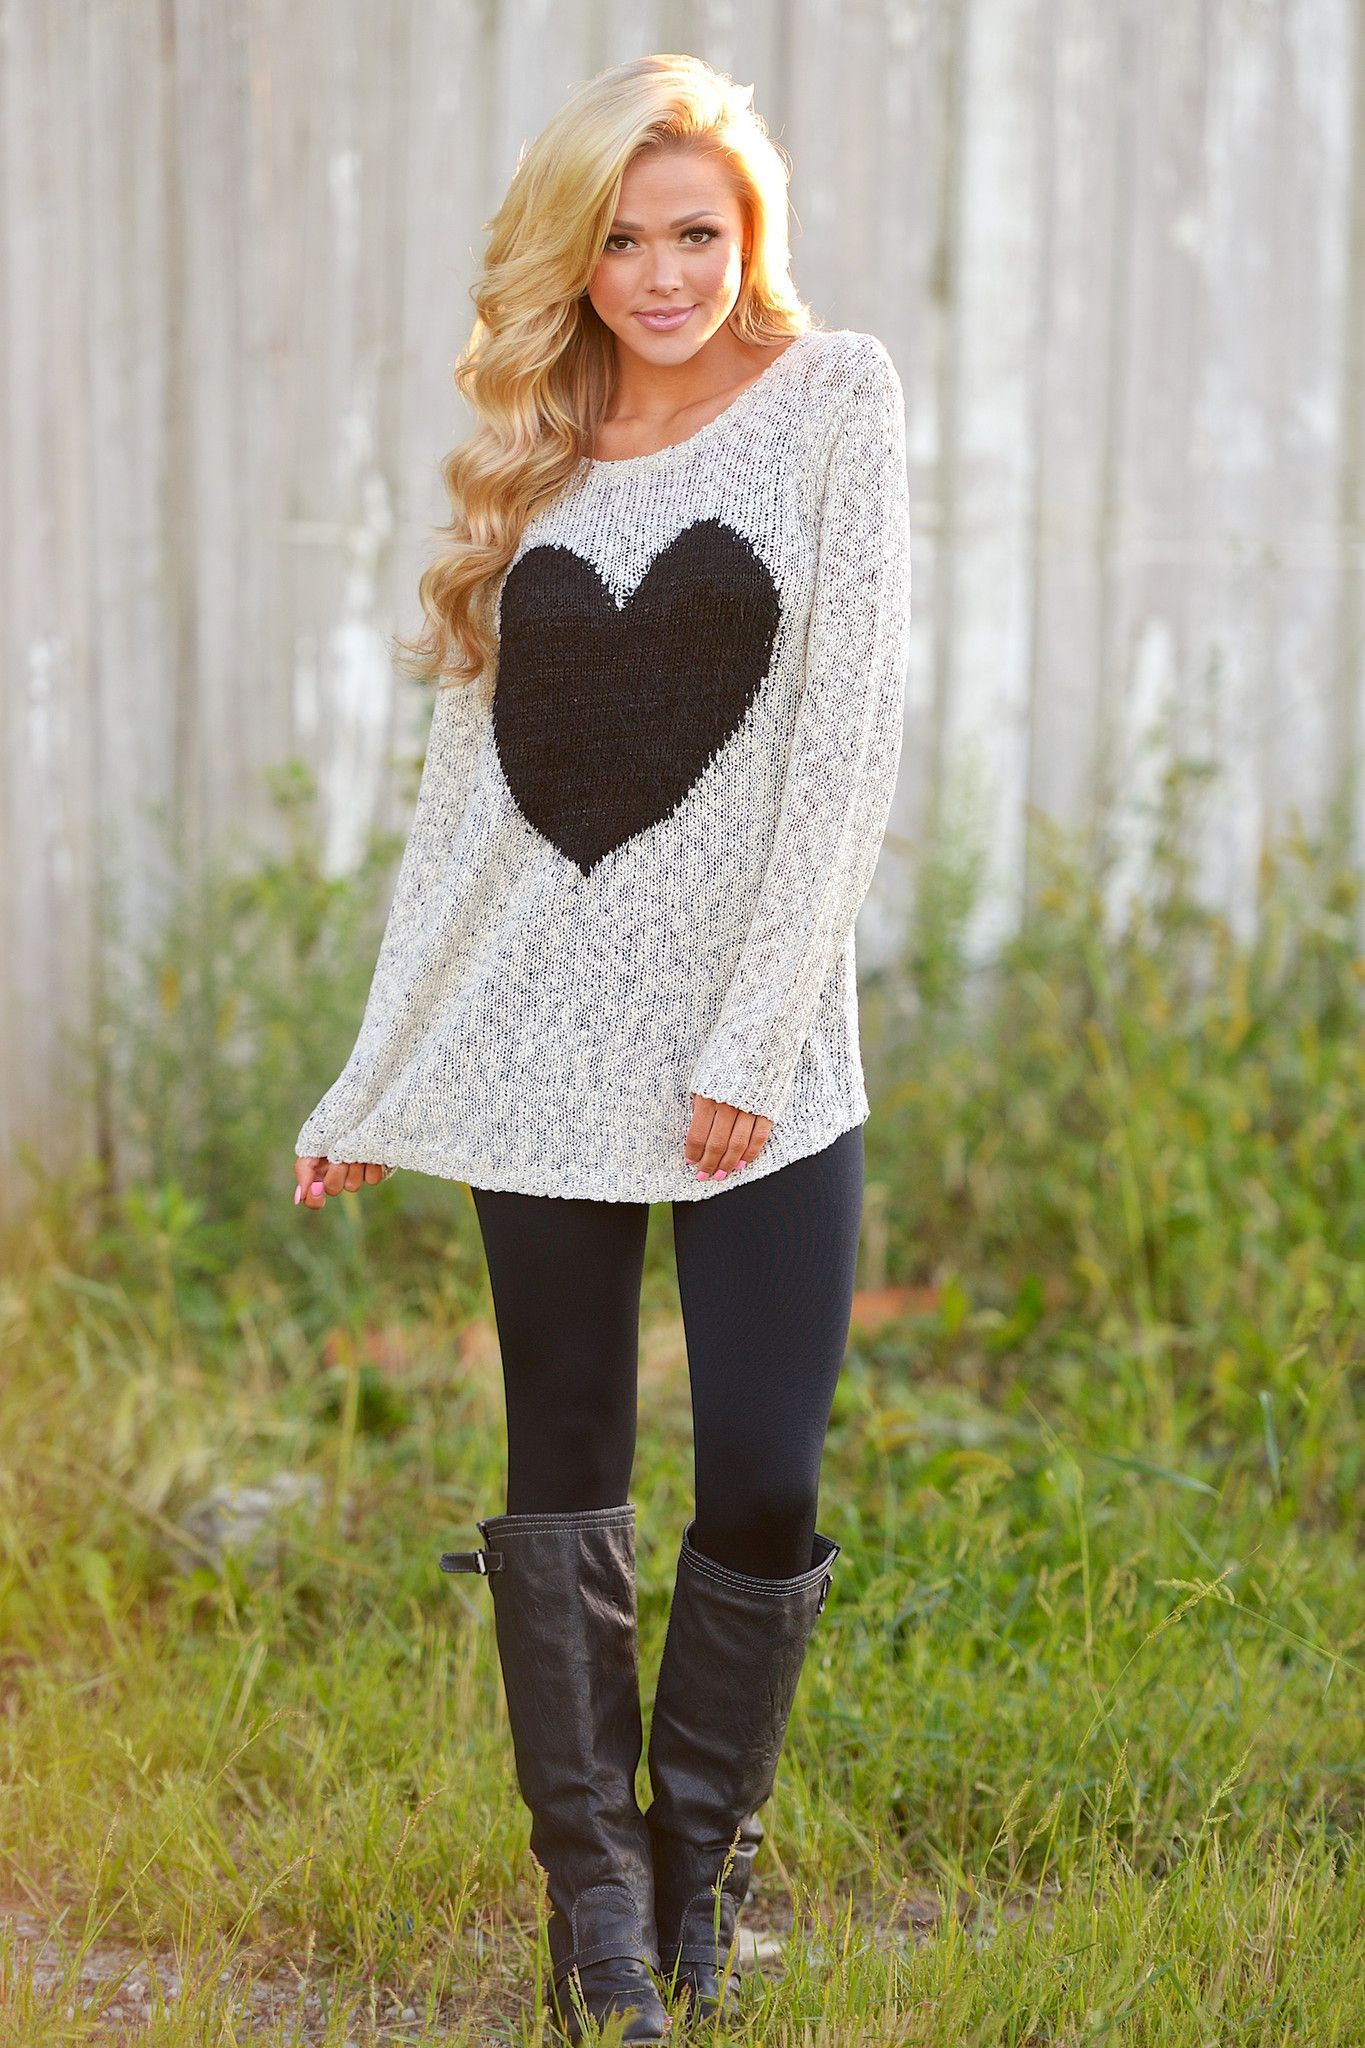 The Heart Wants What It Wants Sweater from Closet Candy Boutique